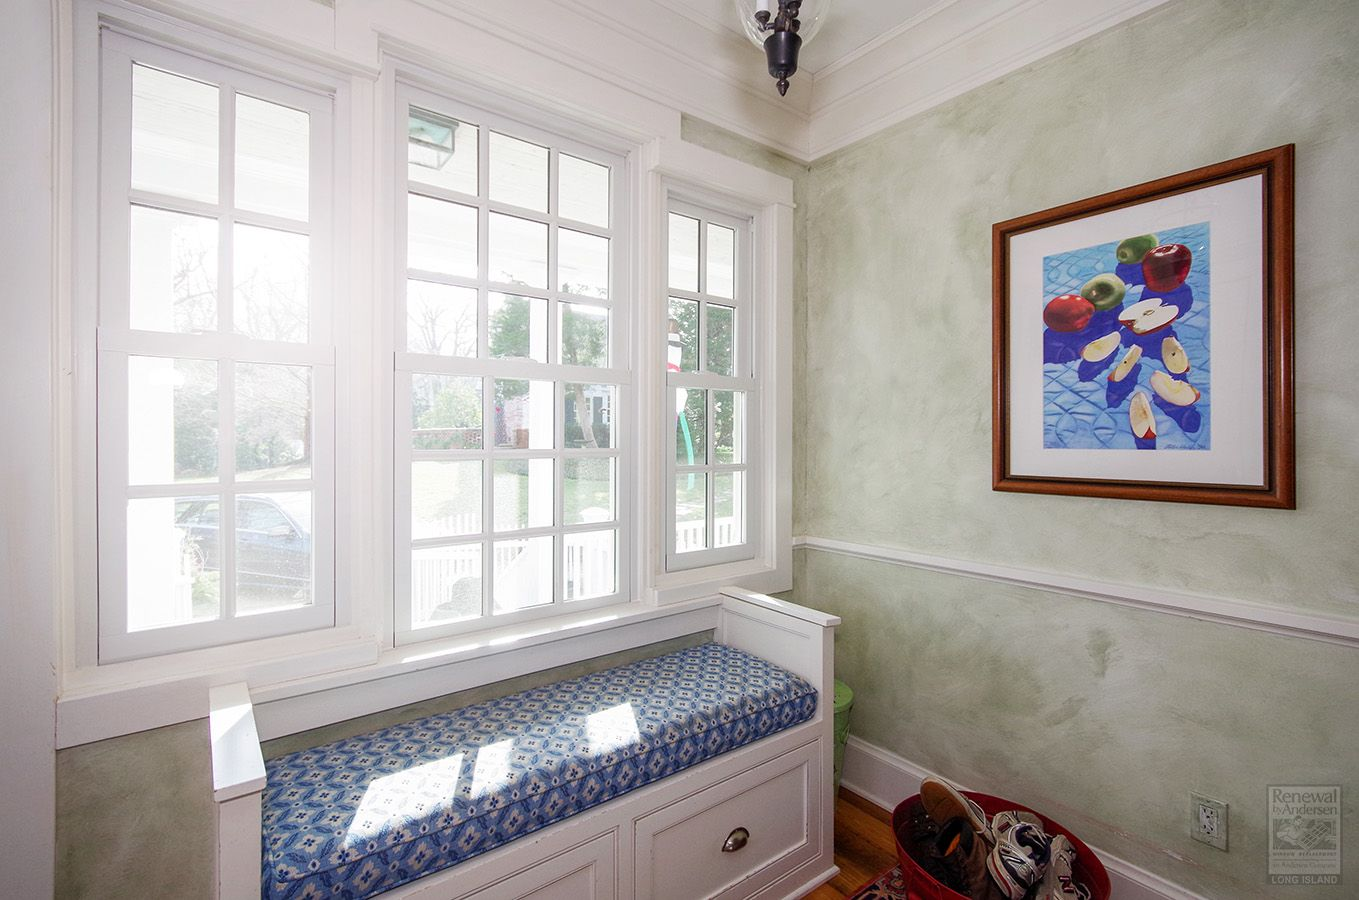 Welcoming Entryway With New Windows Renewal By Andersen In 2020 Remodeling Renovation Home Remodeling Windows And Patio Doors